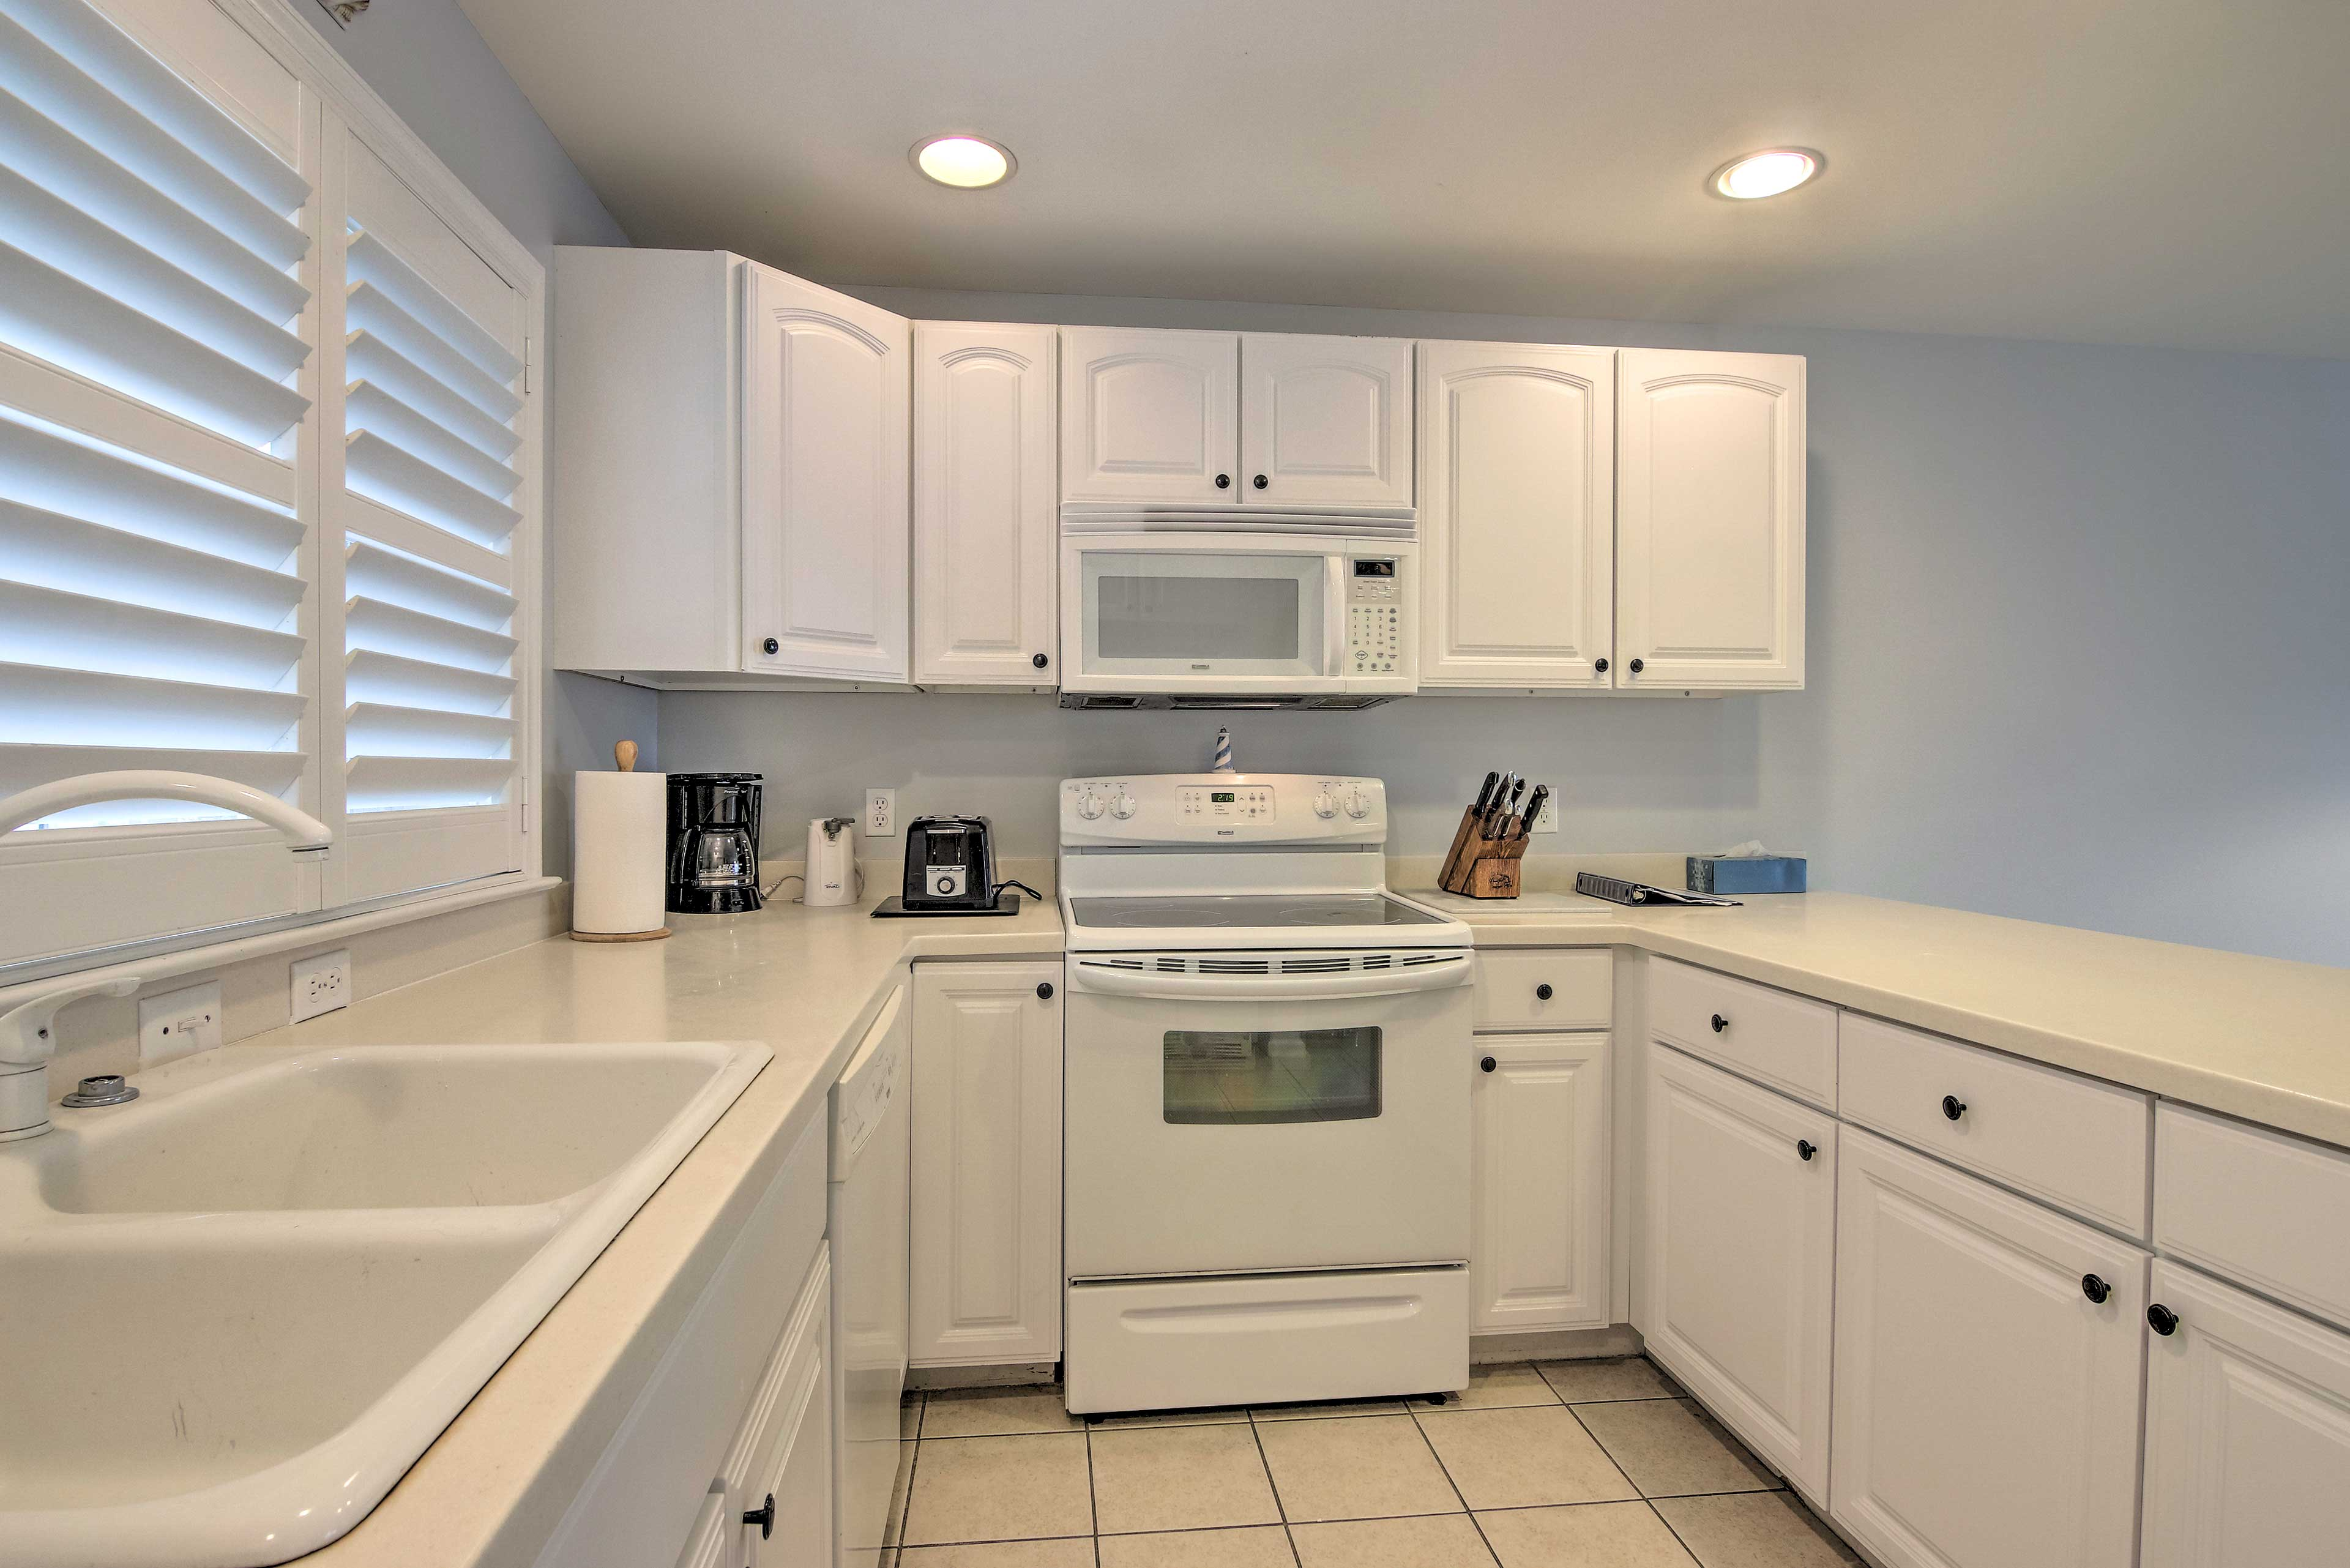 The kitchen comes fully equipped with everything you need.